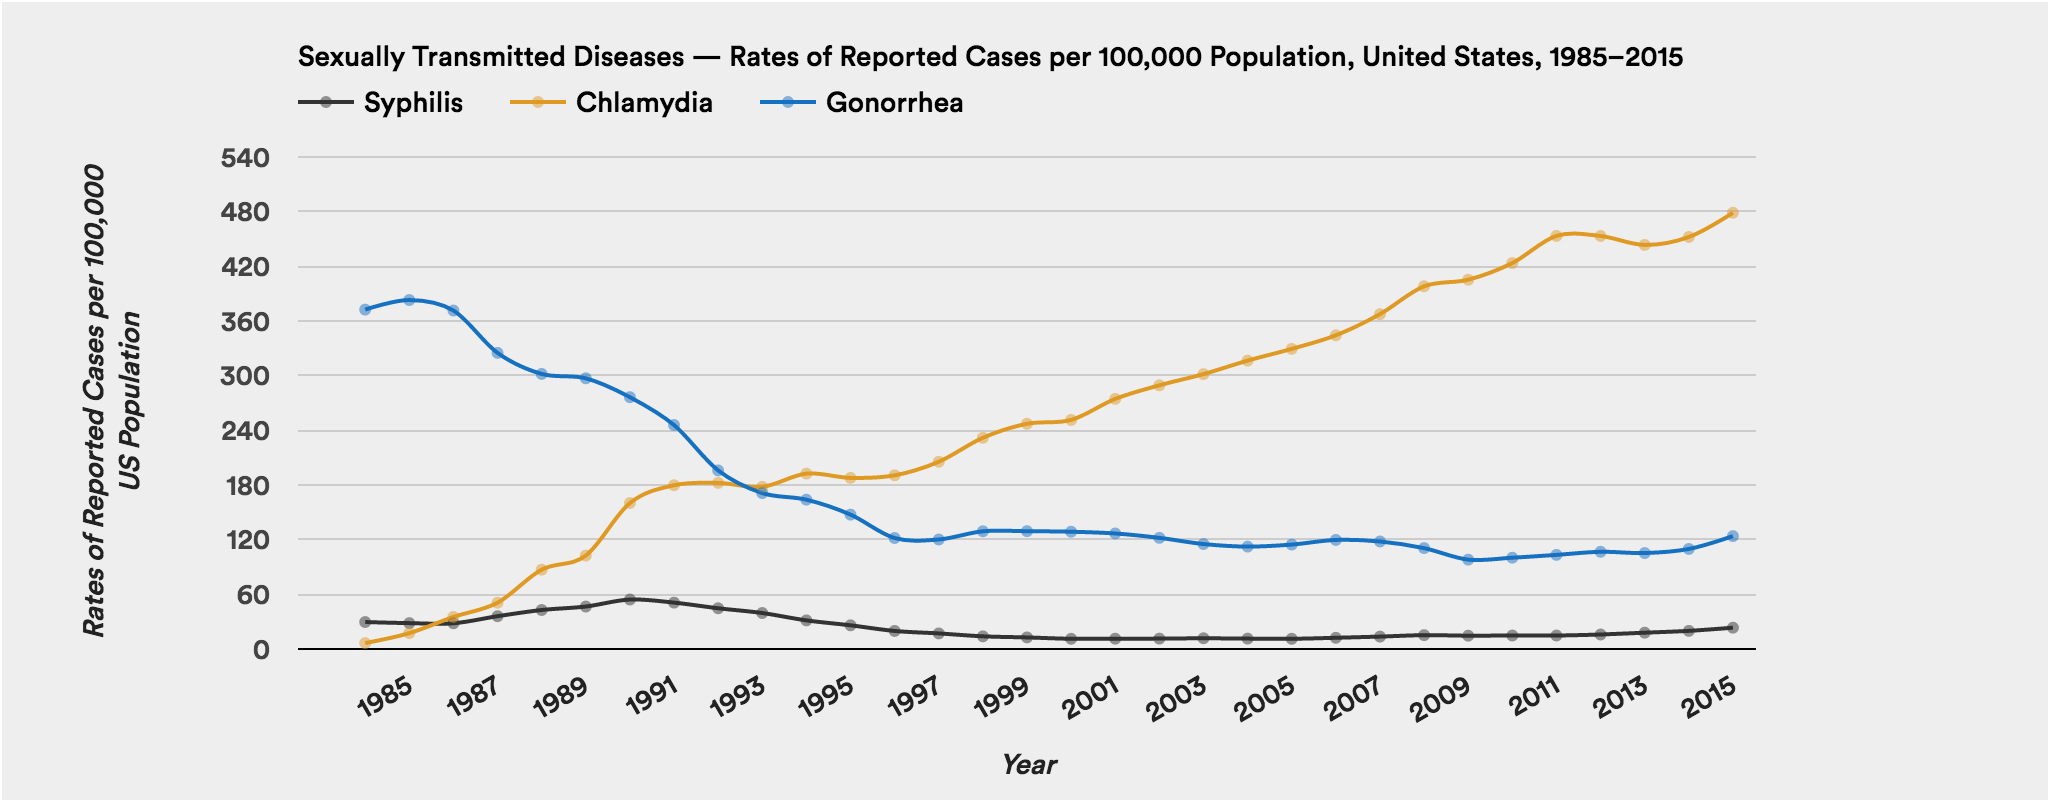 Sexually transmitted diseases — rates of reported cases per 100,000 population, United States, 1985–2015. Source: CDC 2015 STD Surveillance Report. Graphic by Natalia Bronshtein/STAT